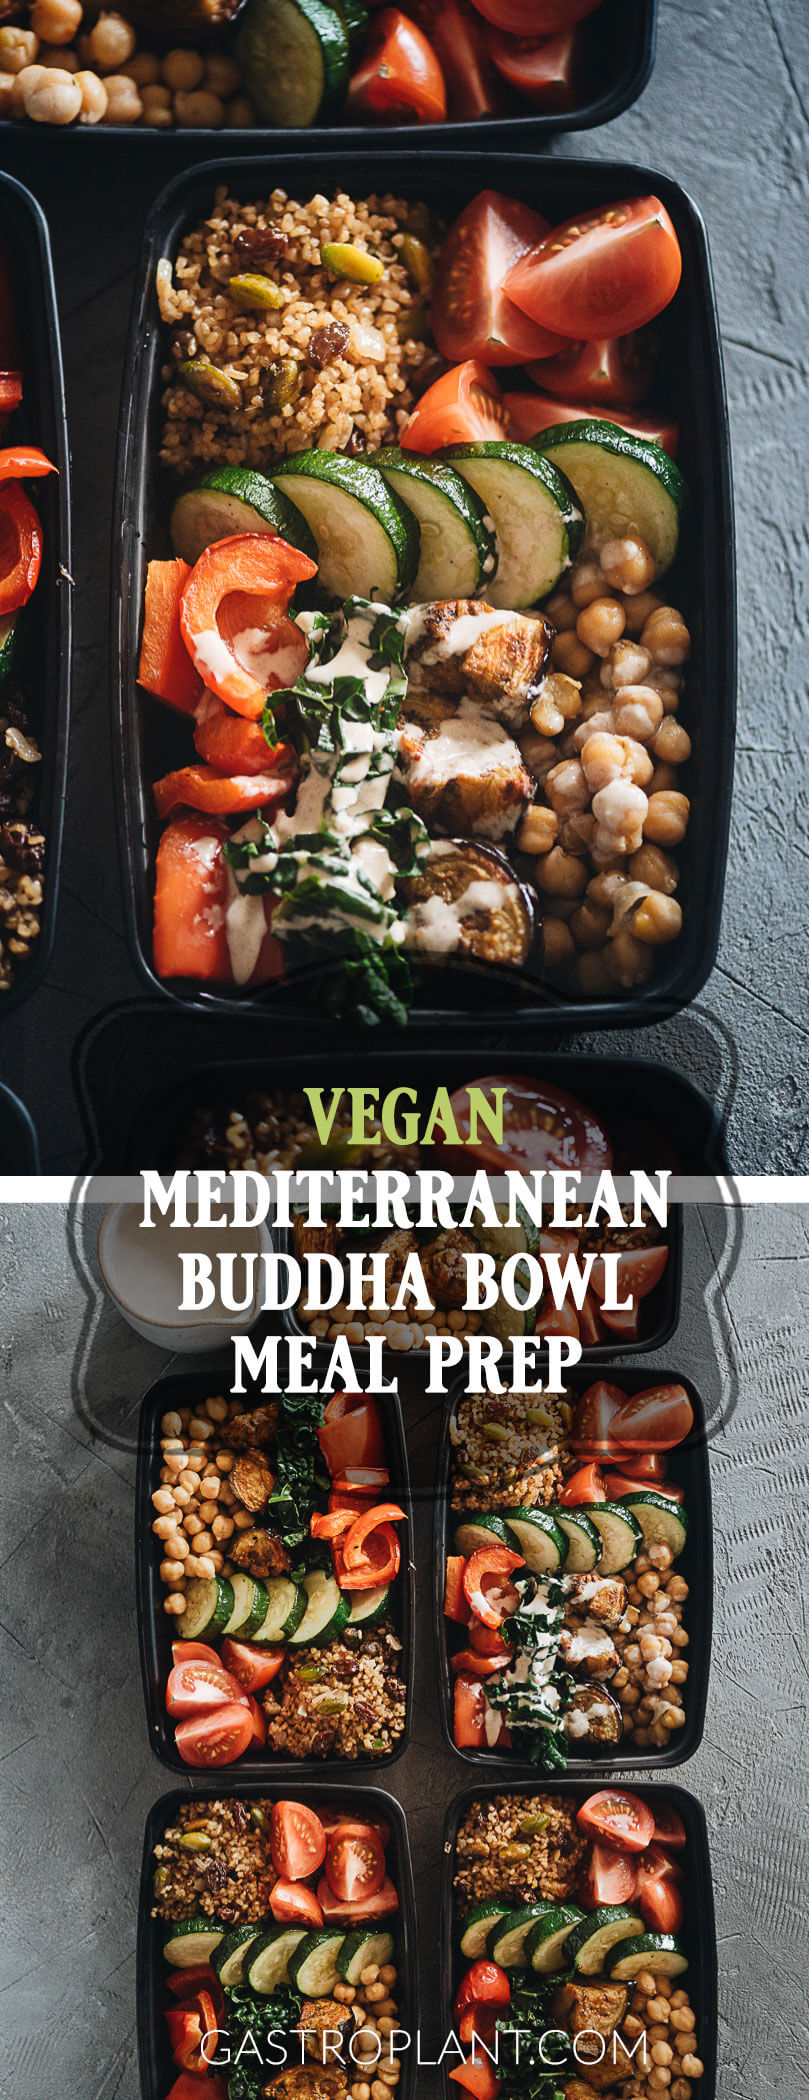 Easy Healthy Mediterranean Buddha Bowl Meal Prep Collage